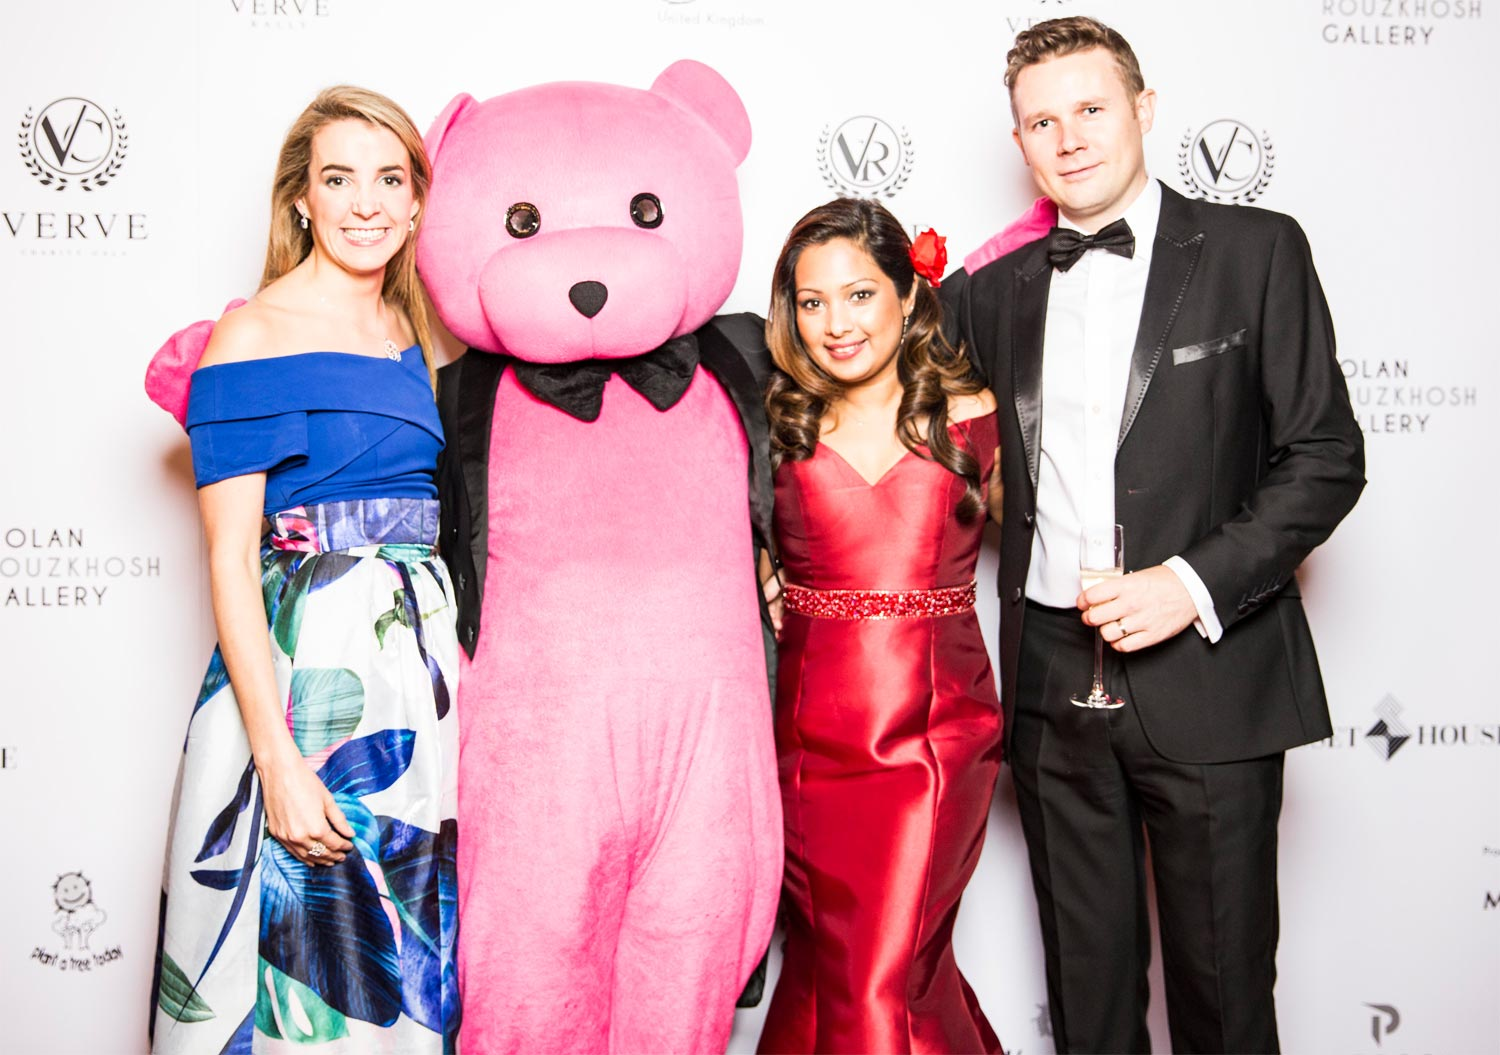 Inaugural Verve Fundraising Gala Ball Raises Over £10,000 for Charity 1